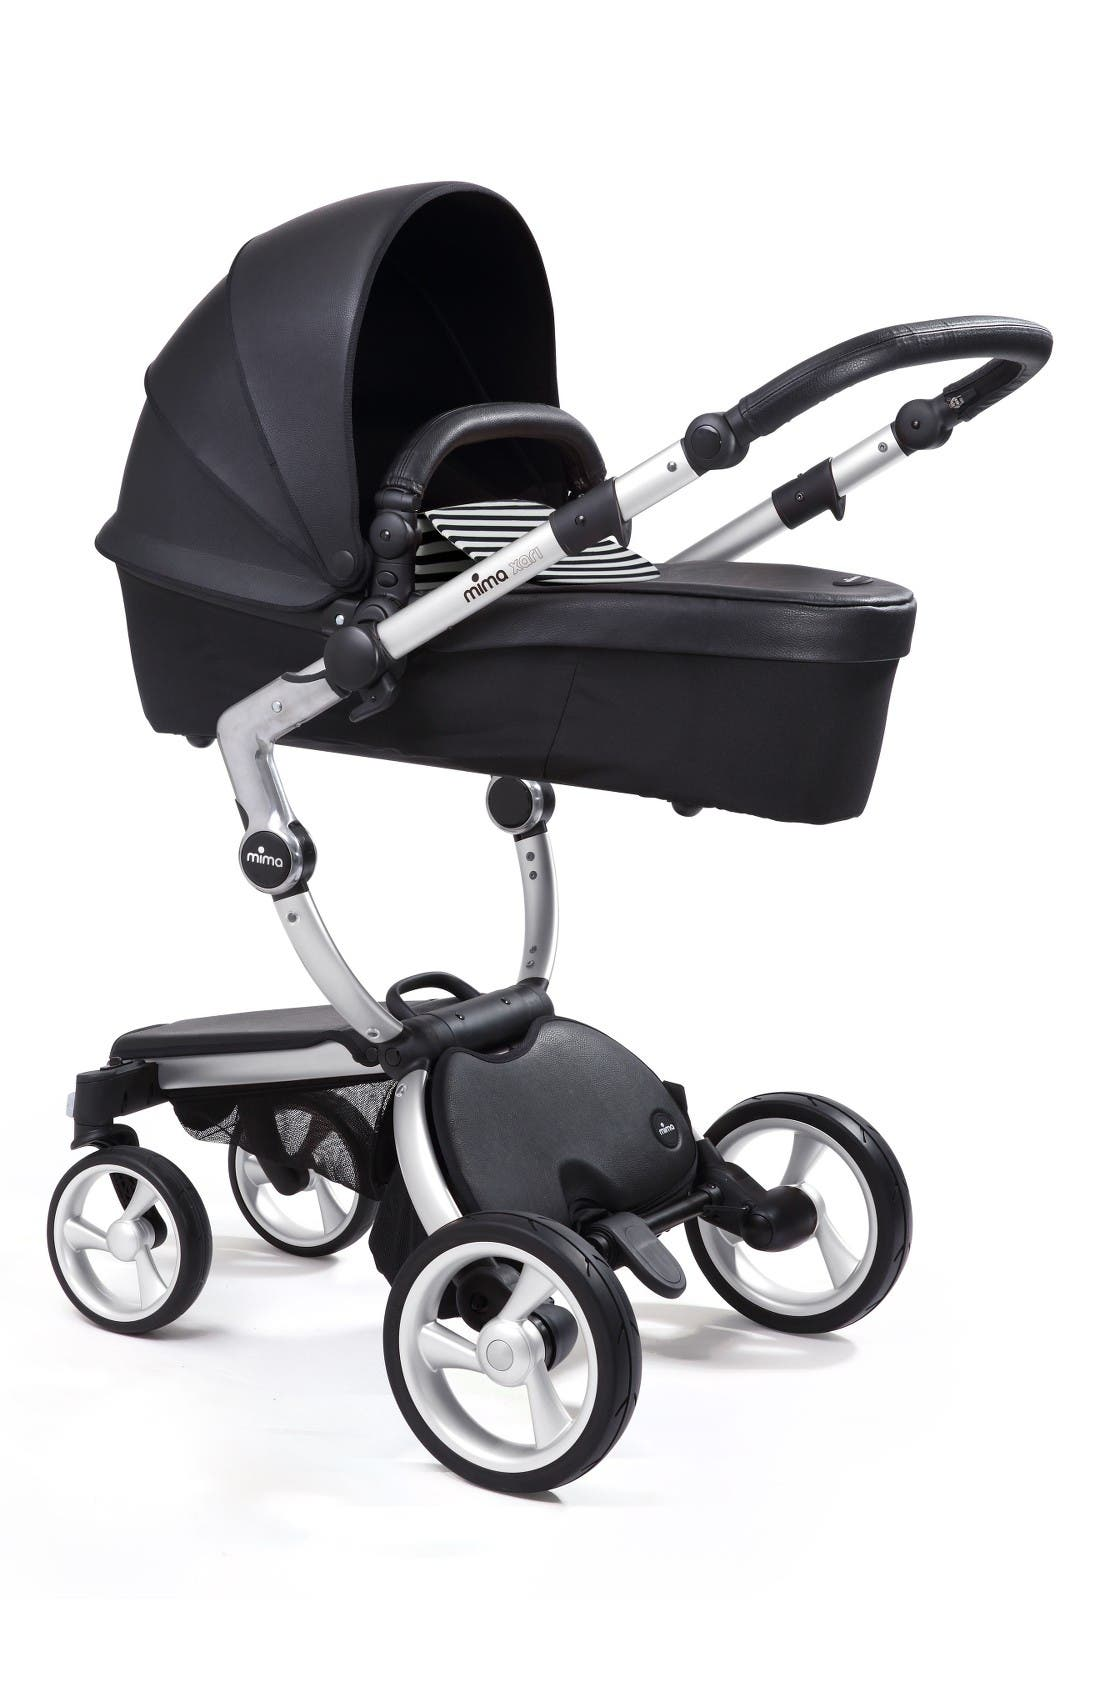 Xari Aluminum Chassis Stroller with Reversible Reclining Seat & Carrycot,                             Alternate thumbnail 4, color,                             Black / Black And White